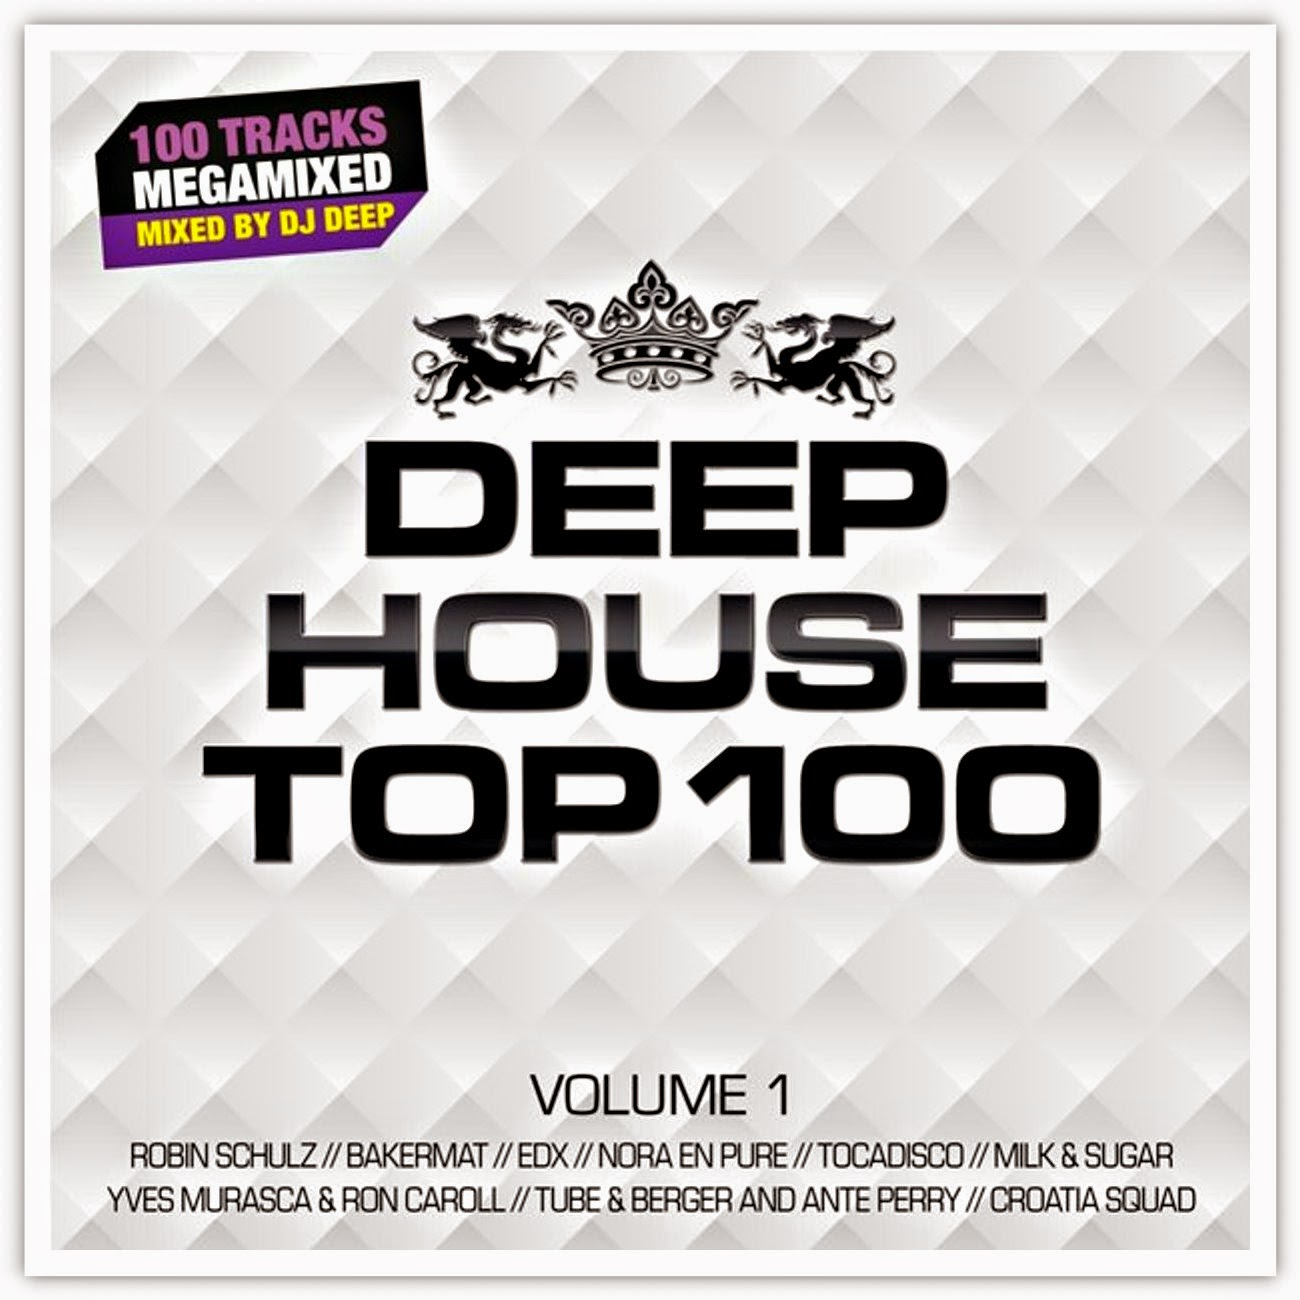 Artist: va title: electro top from djmcbit vol10 label: artmkiss genre: electro house store date: 30072010 source